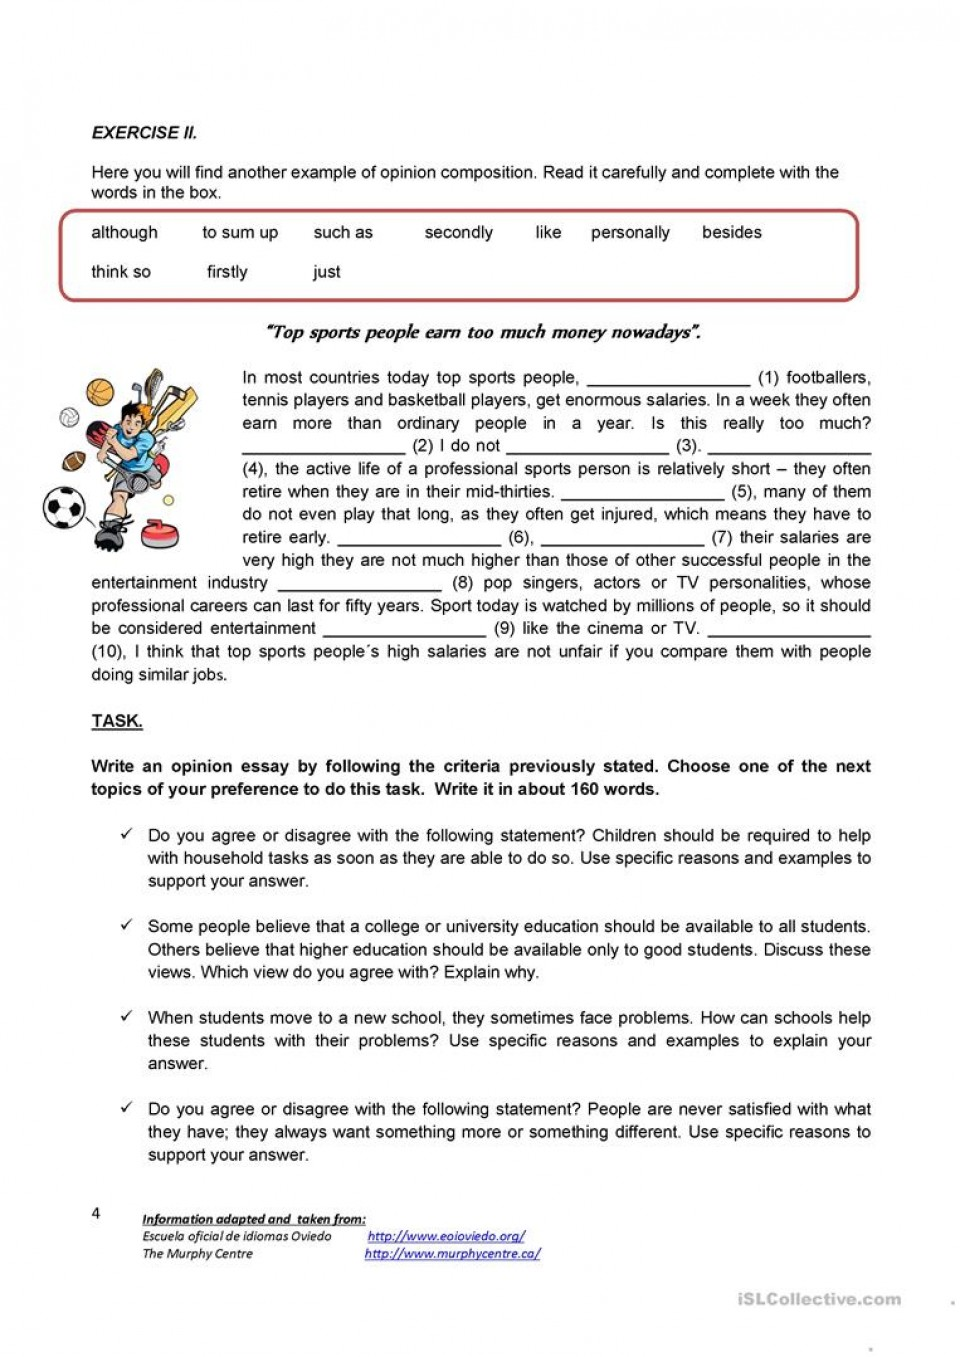 004 Essay Example Writing An Opinion Creative Tasks 80444 4 How To Unbelievable Write Conclusion On A Book Video 960